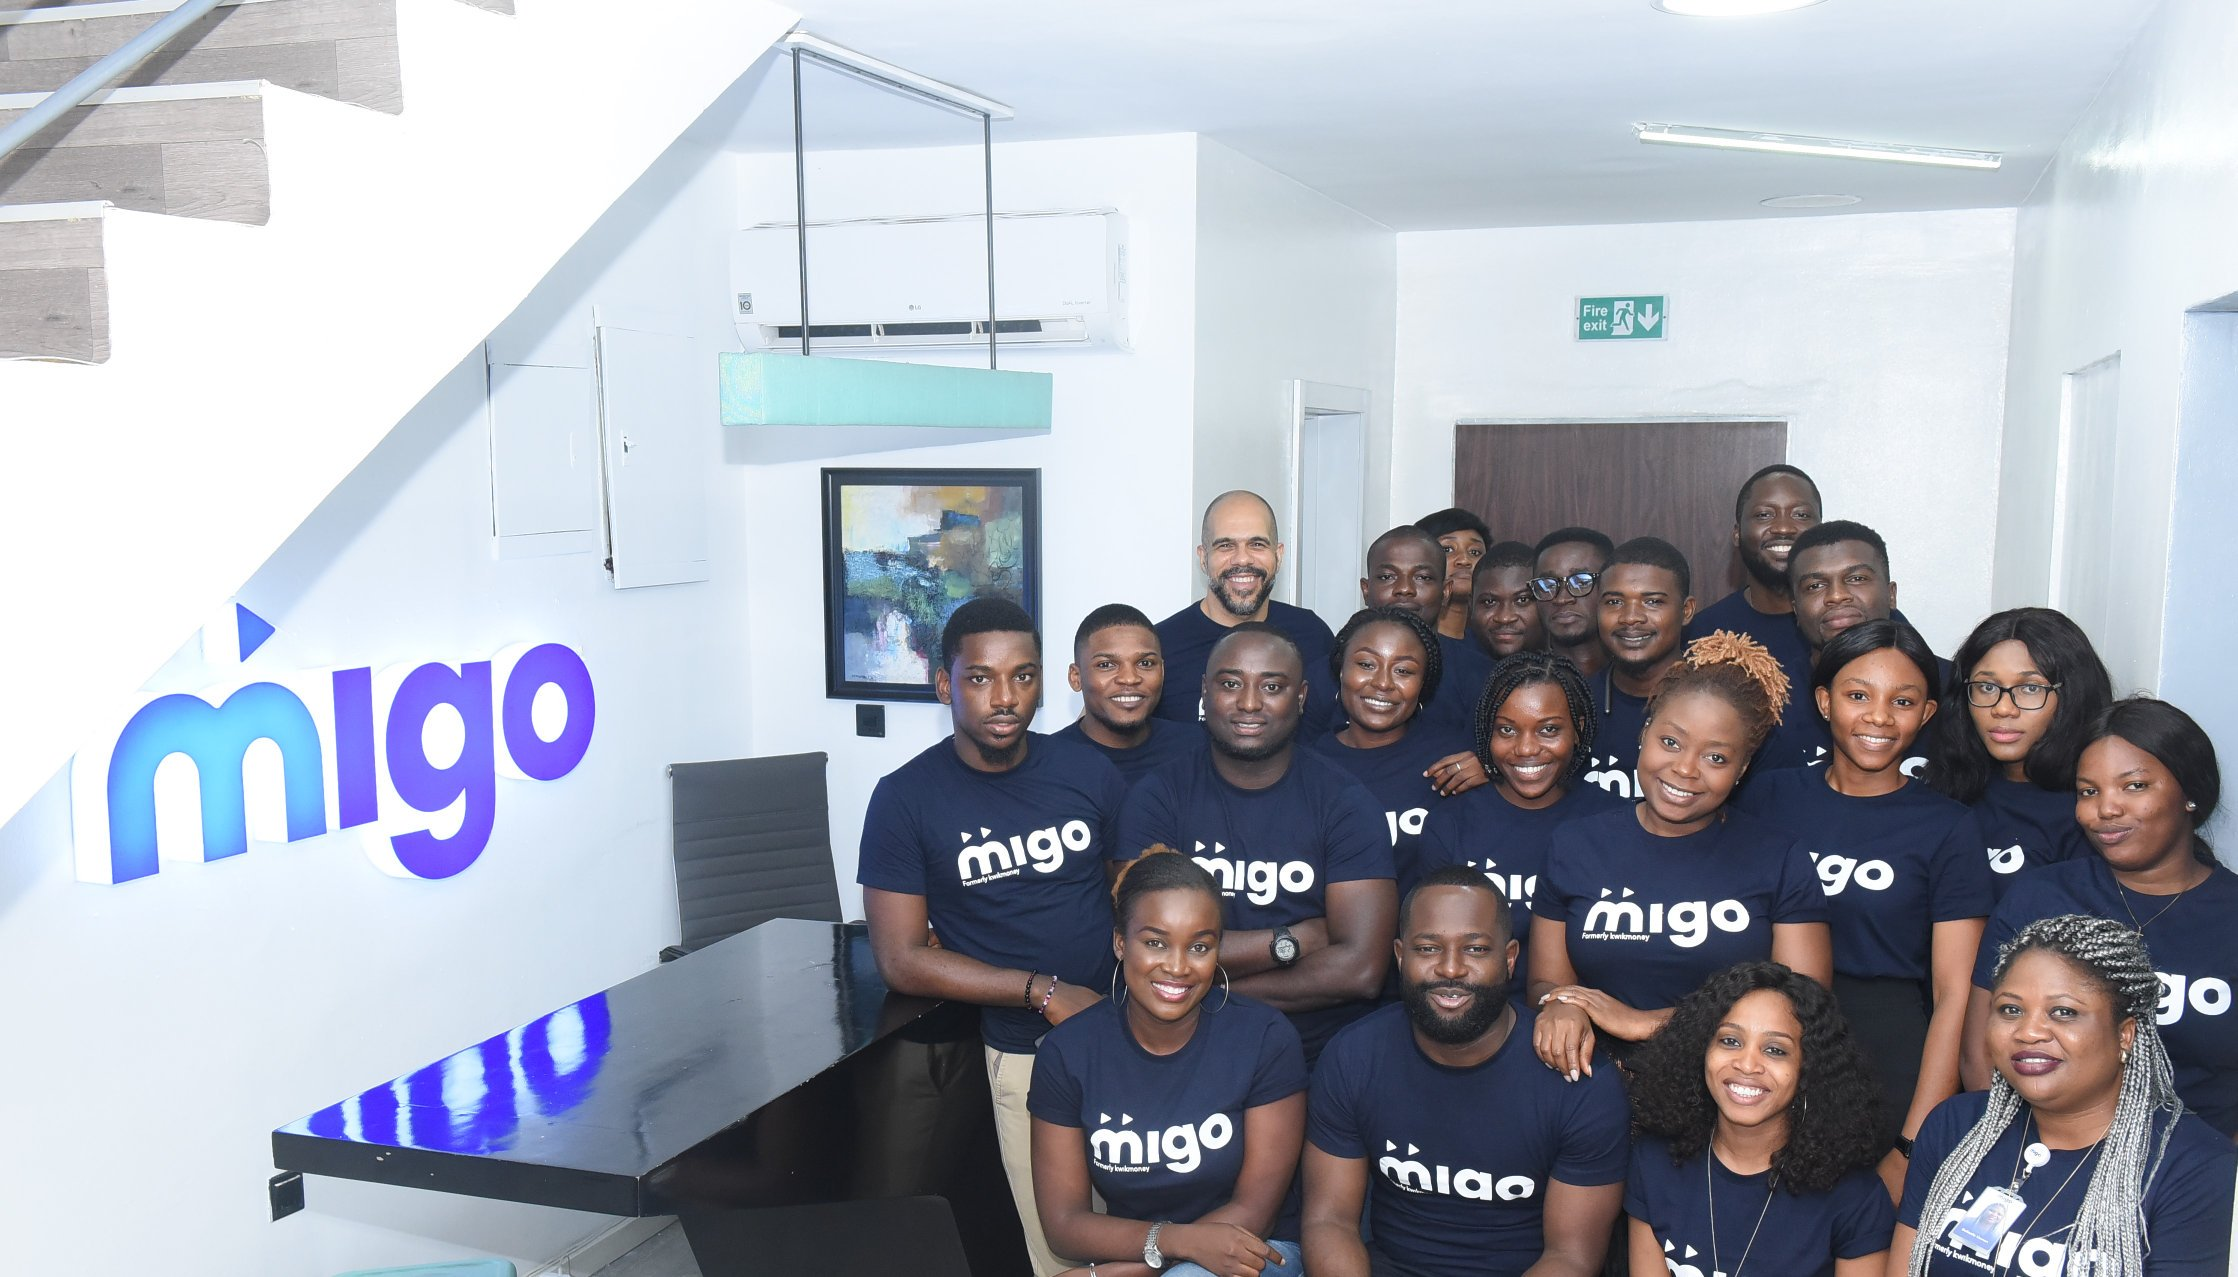 Credit startup Migo, this week, raised a $20m Series B round. What were they previously known as?